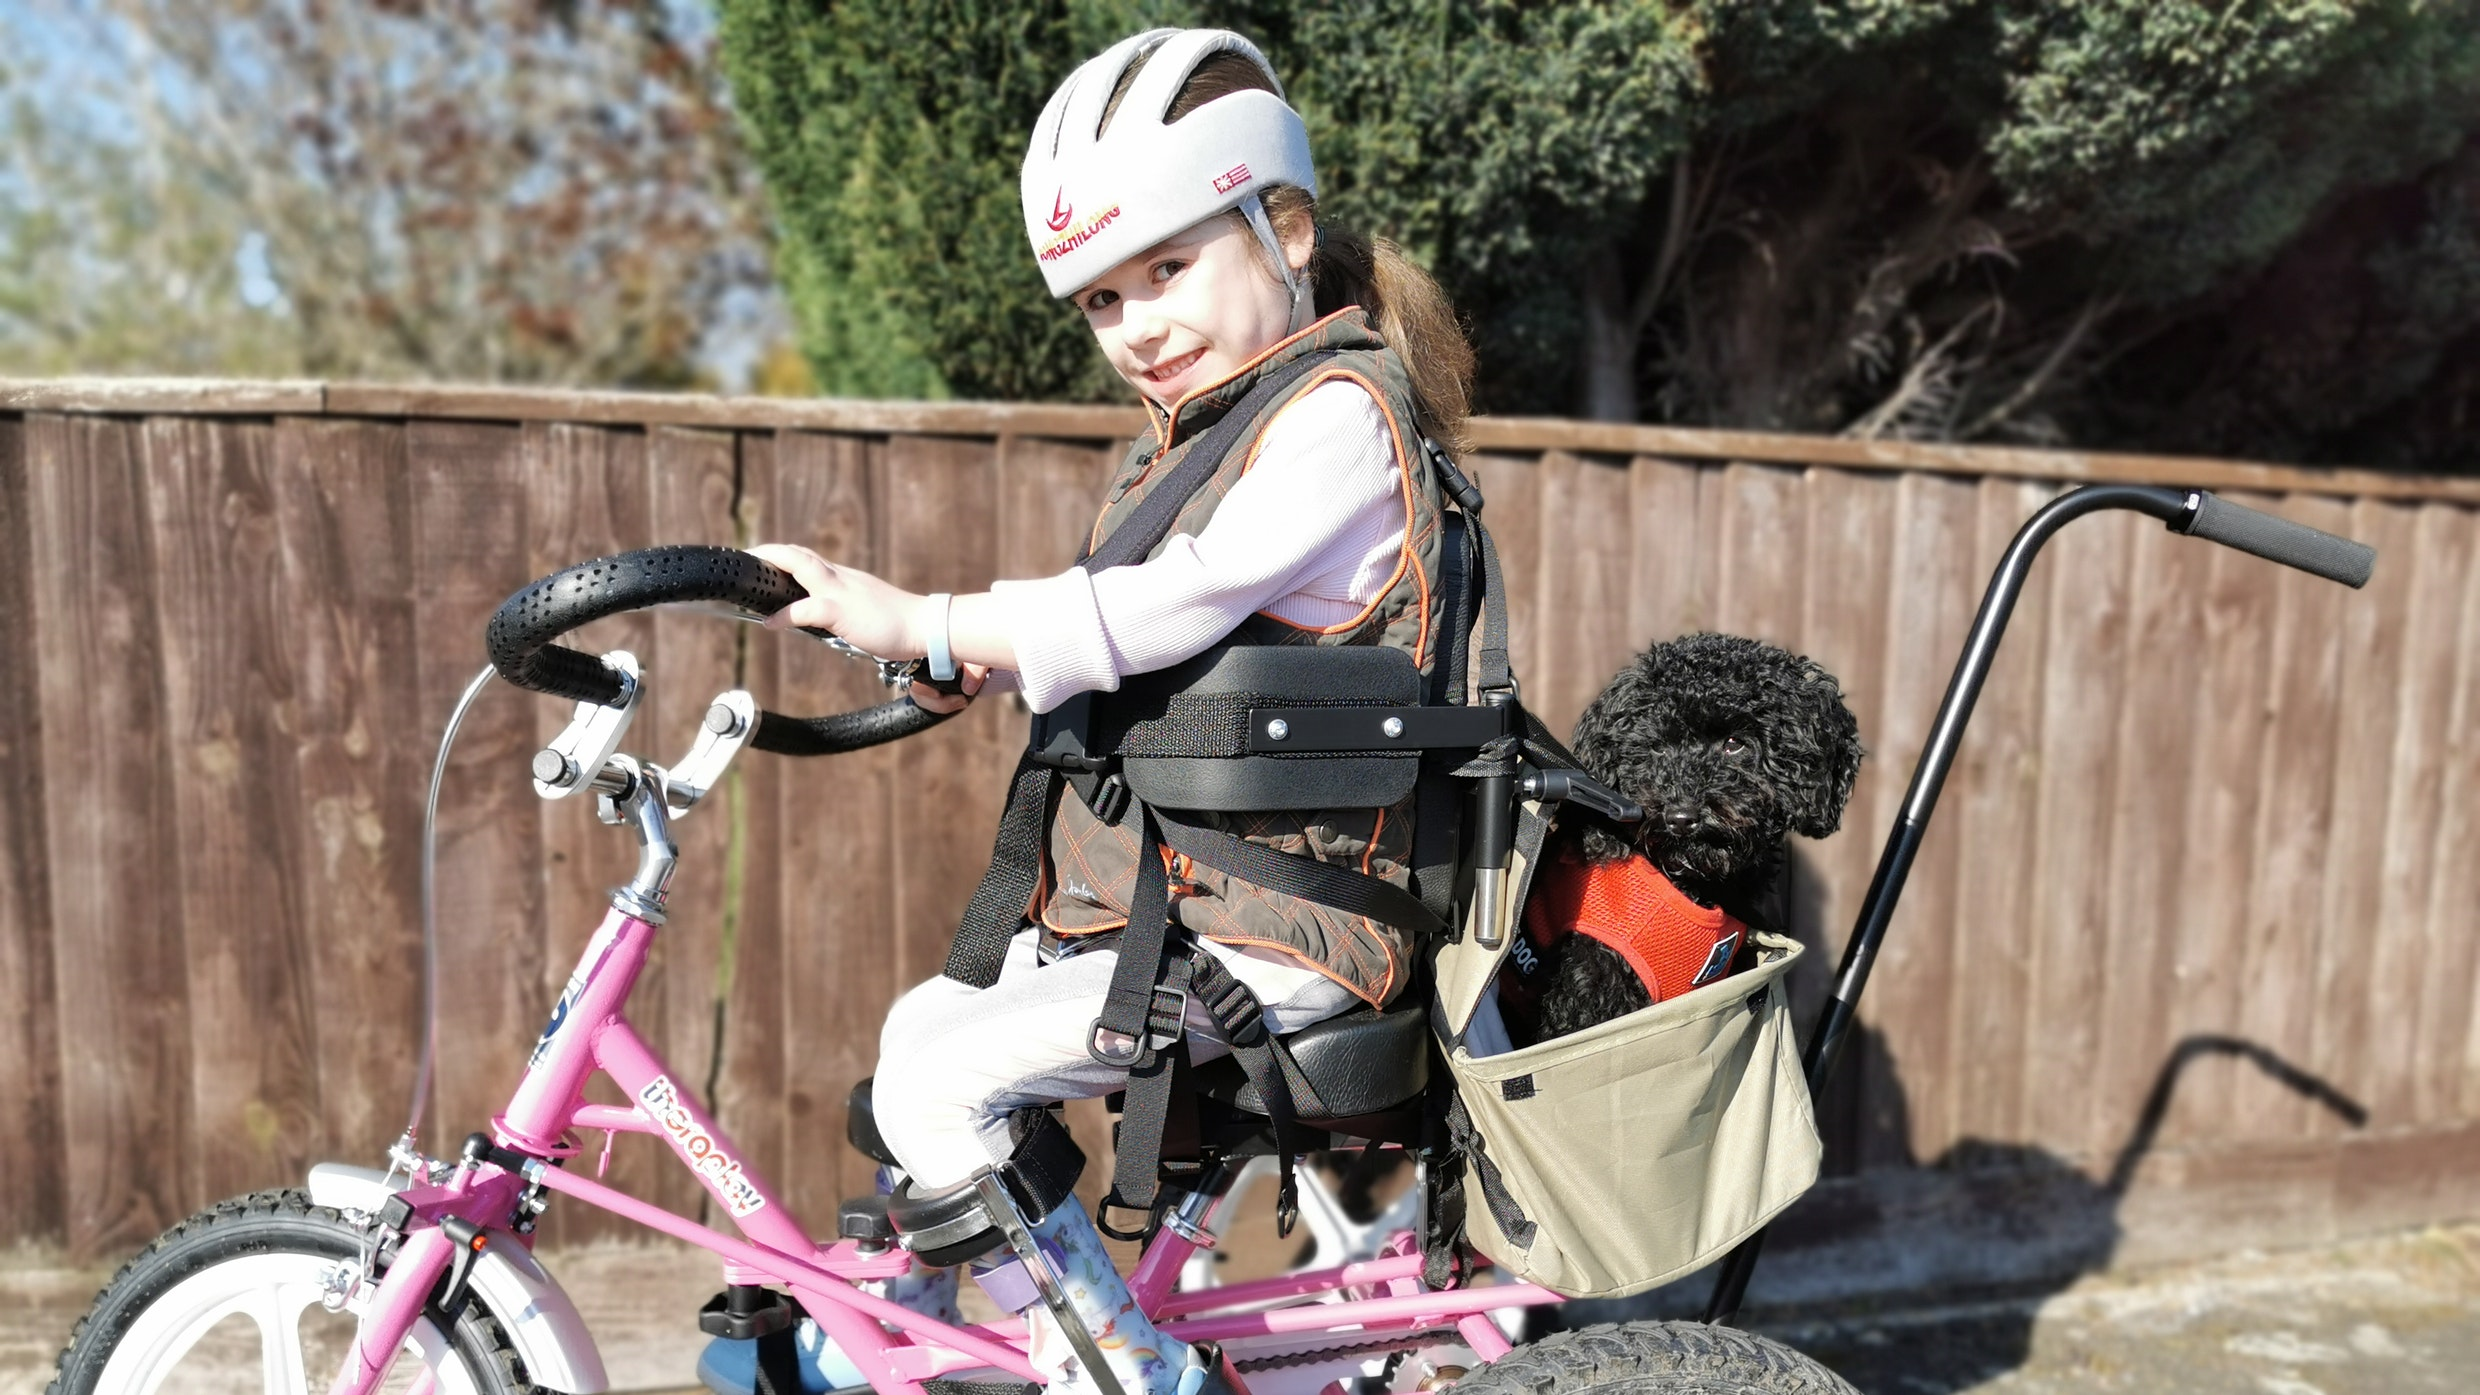 Carmela goes for a ride on her pink trike with dog Tinker